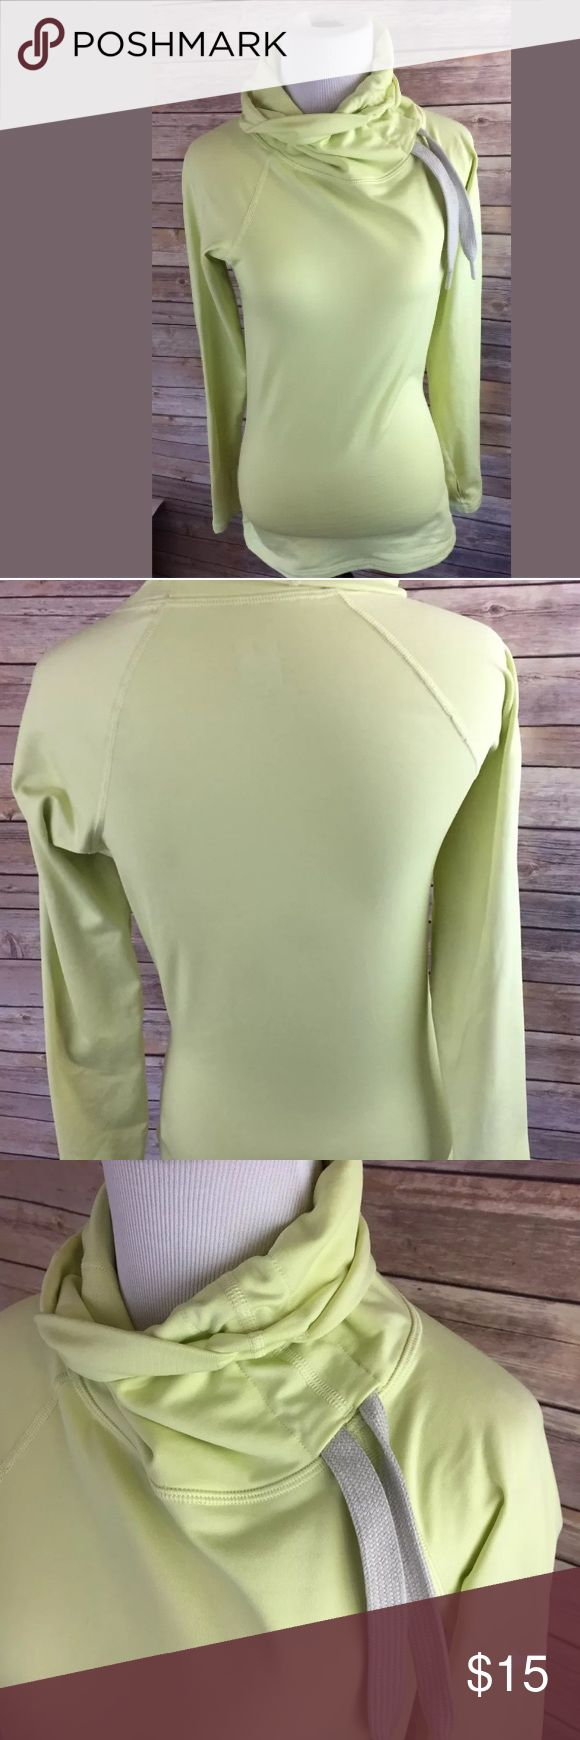 """Nike Pro Woman's Sport Yellow Pullover Shirt SZ S Measurements: Armpit to armpit laying flat 17"""" Length from top of shoulder to bottom of shirt 26"""" Material: Polyester Nike Tops Sweatshirts & Hoodies"""